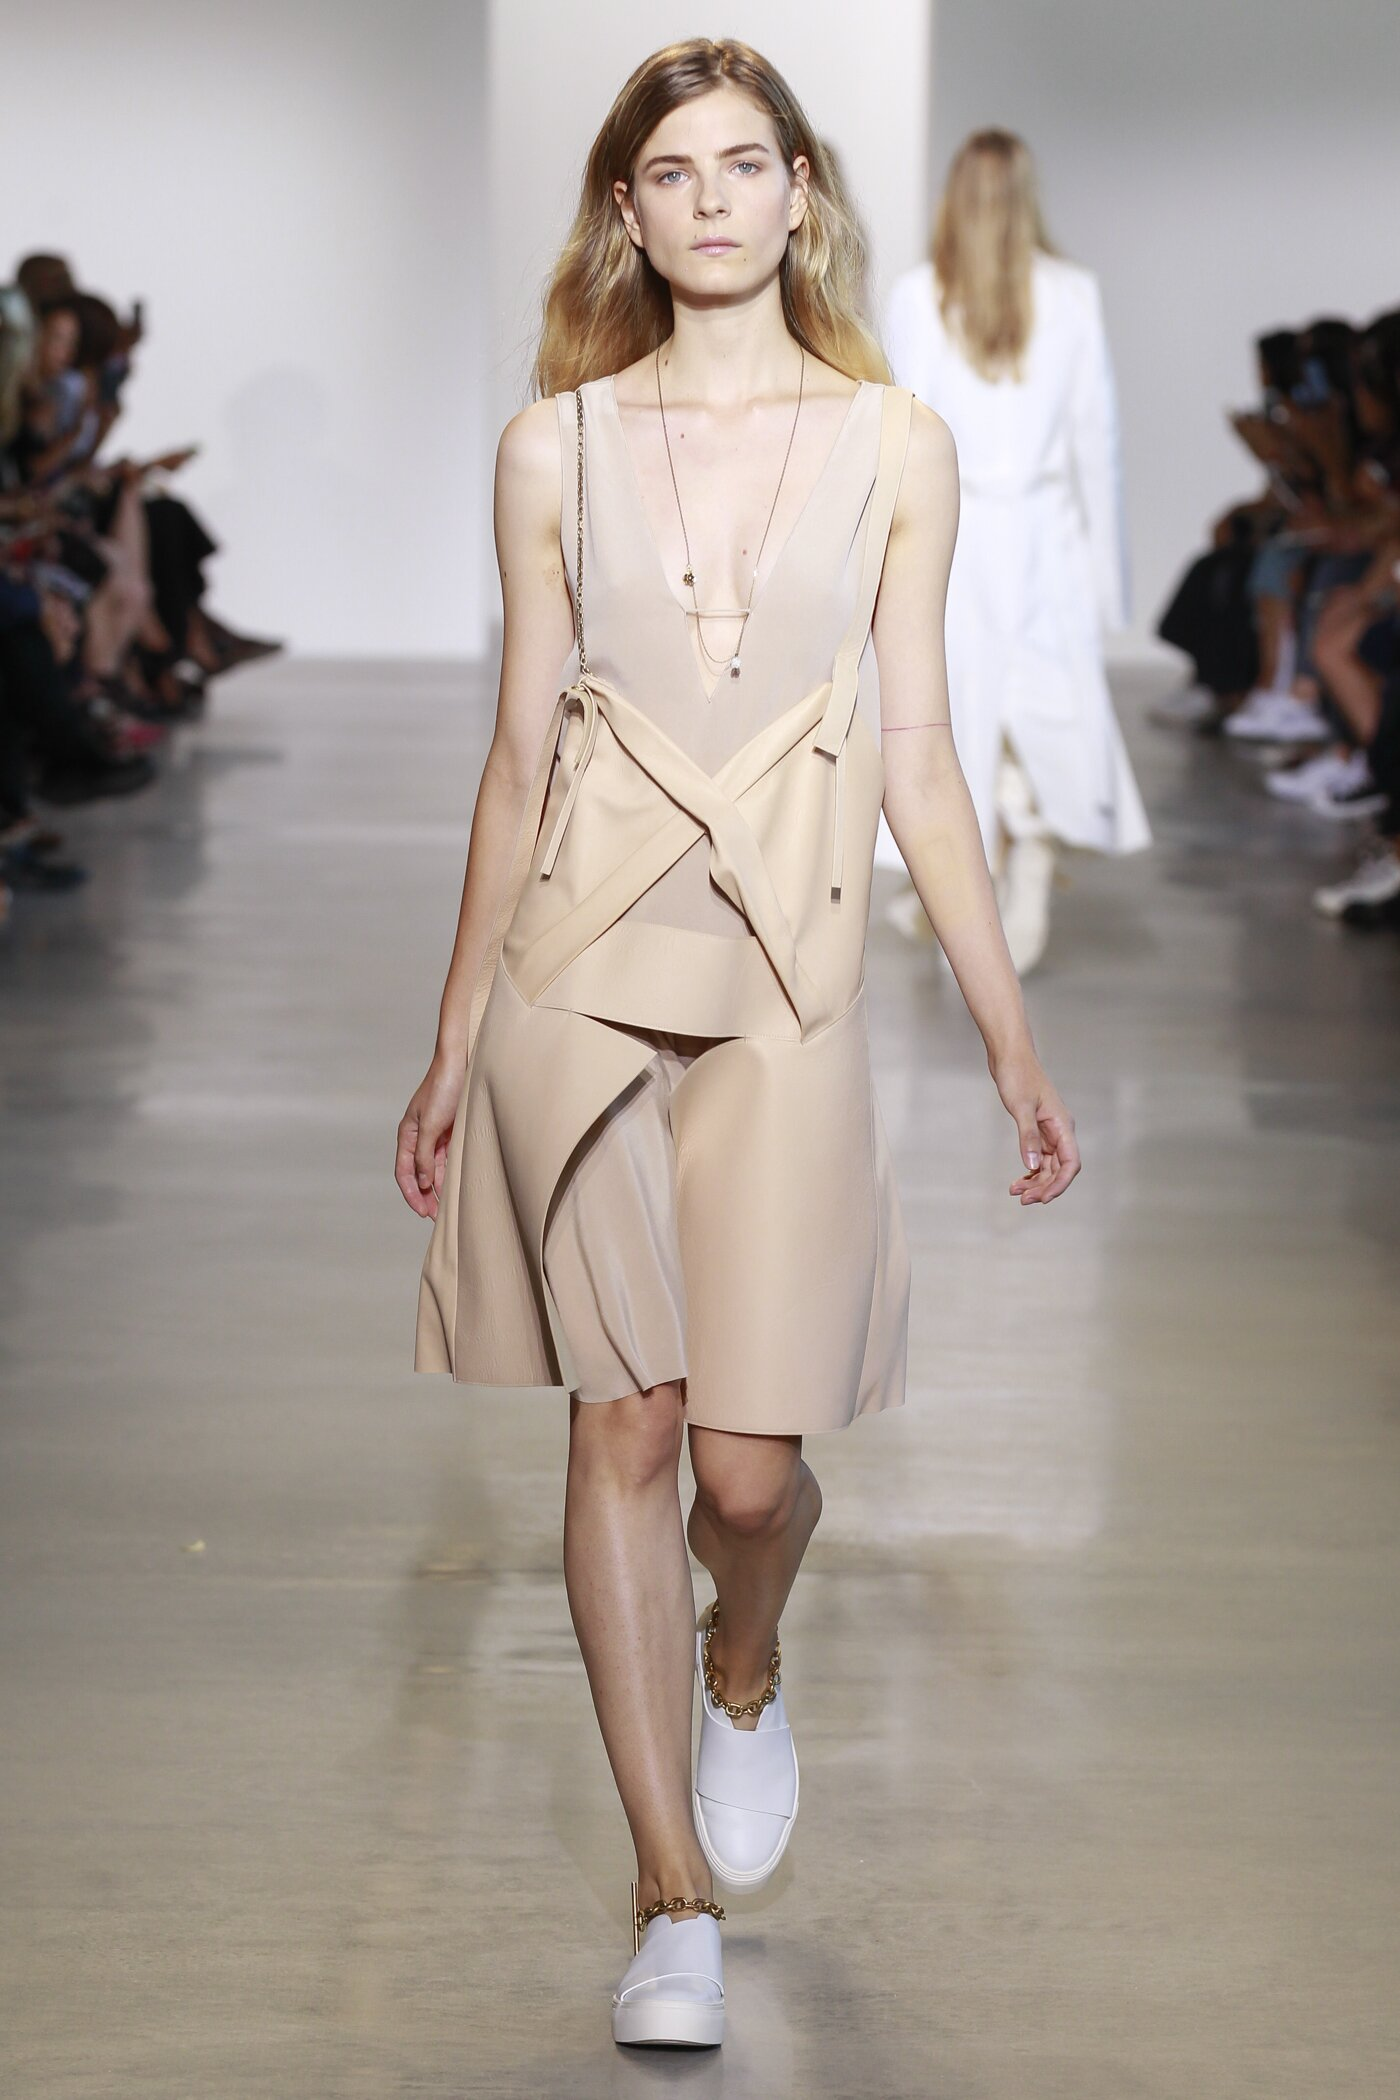 Calvin Klein Spring Summer 2016 Womenswear Collection London Fashion Week Fashion Show